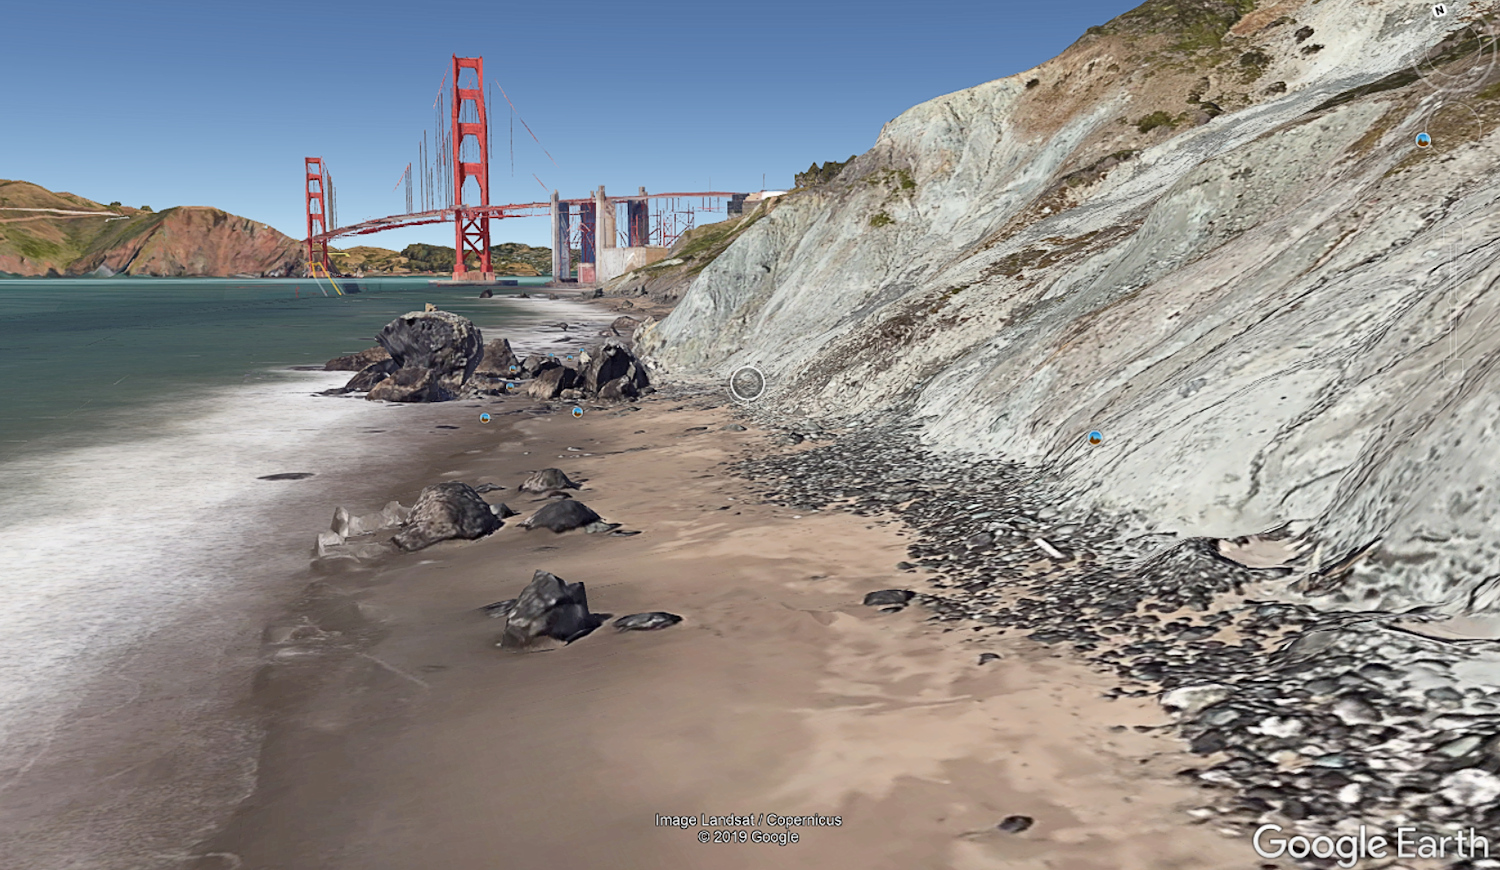 Cyber-scouting for photo locations - Golden Gate Bridge from Marshalls Beach - Google Earth